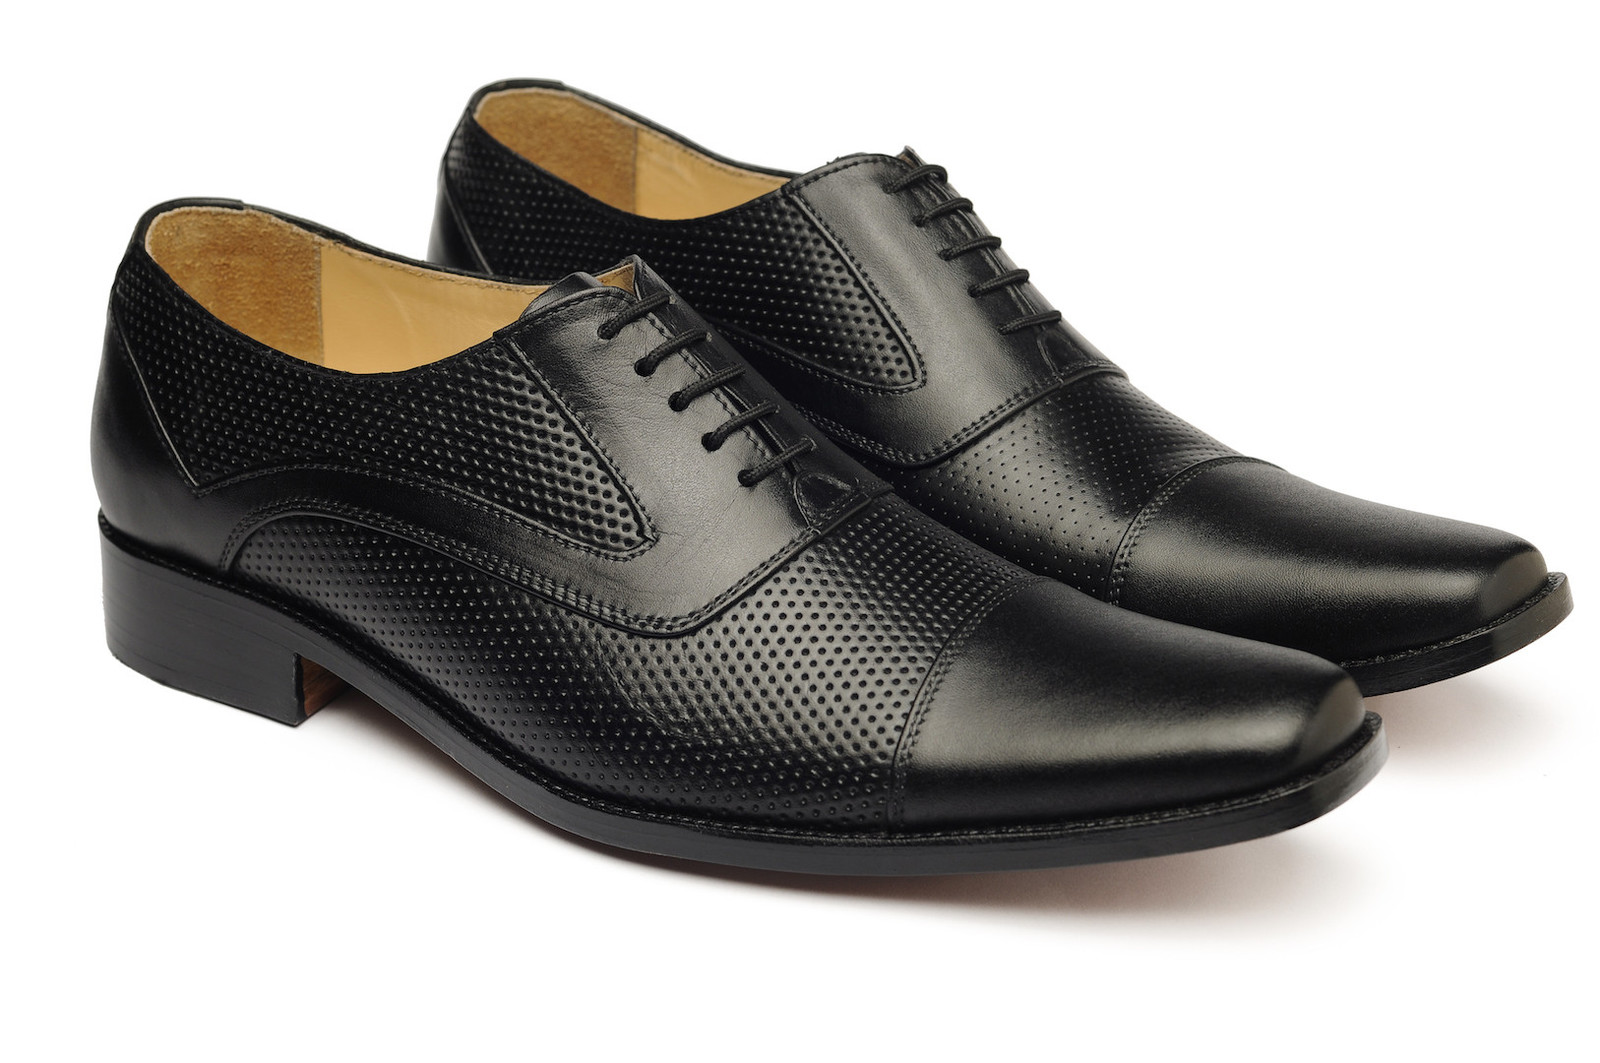 HANDMADE BLACK OXFORD PERFORATED SHOES, MEN'S BLACK DRESS SHOES,  REAL LEATHER